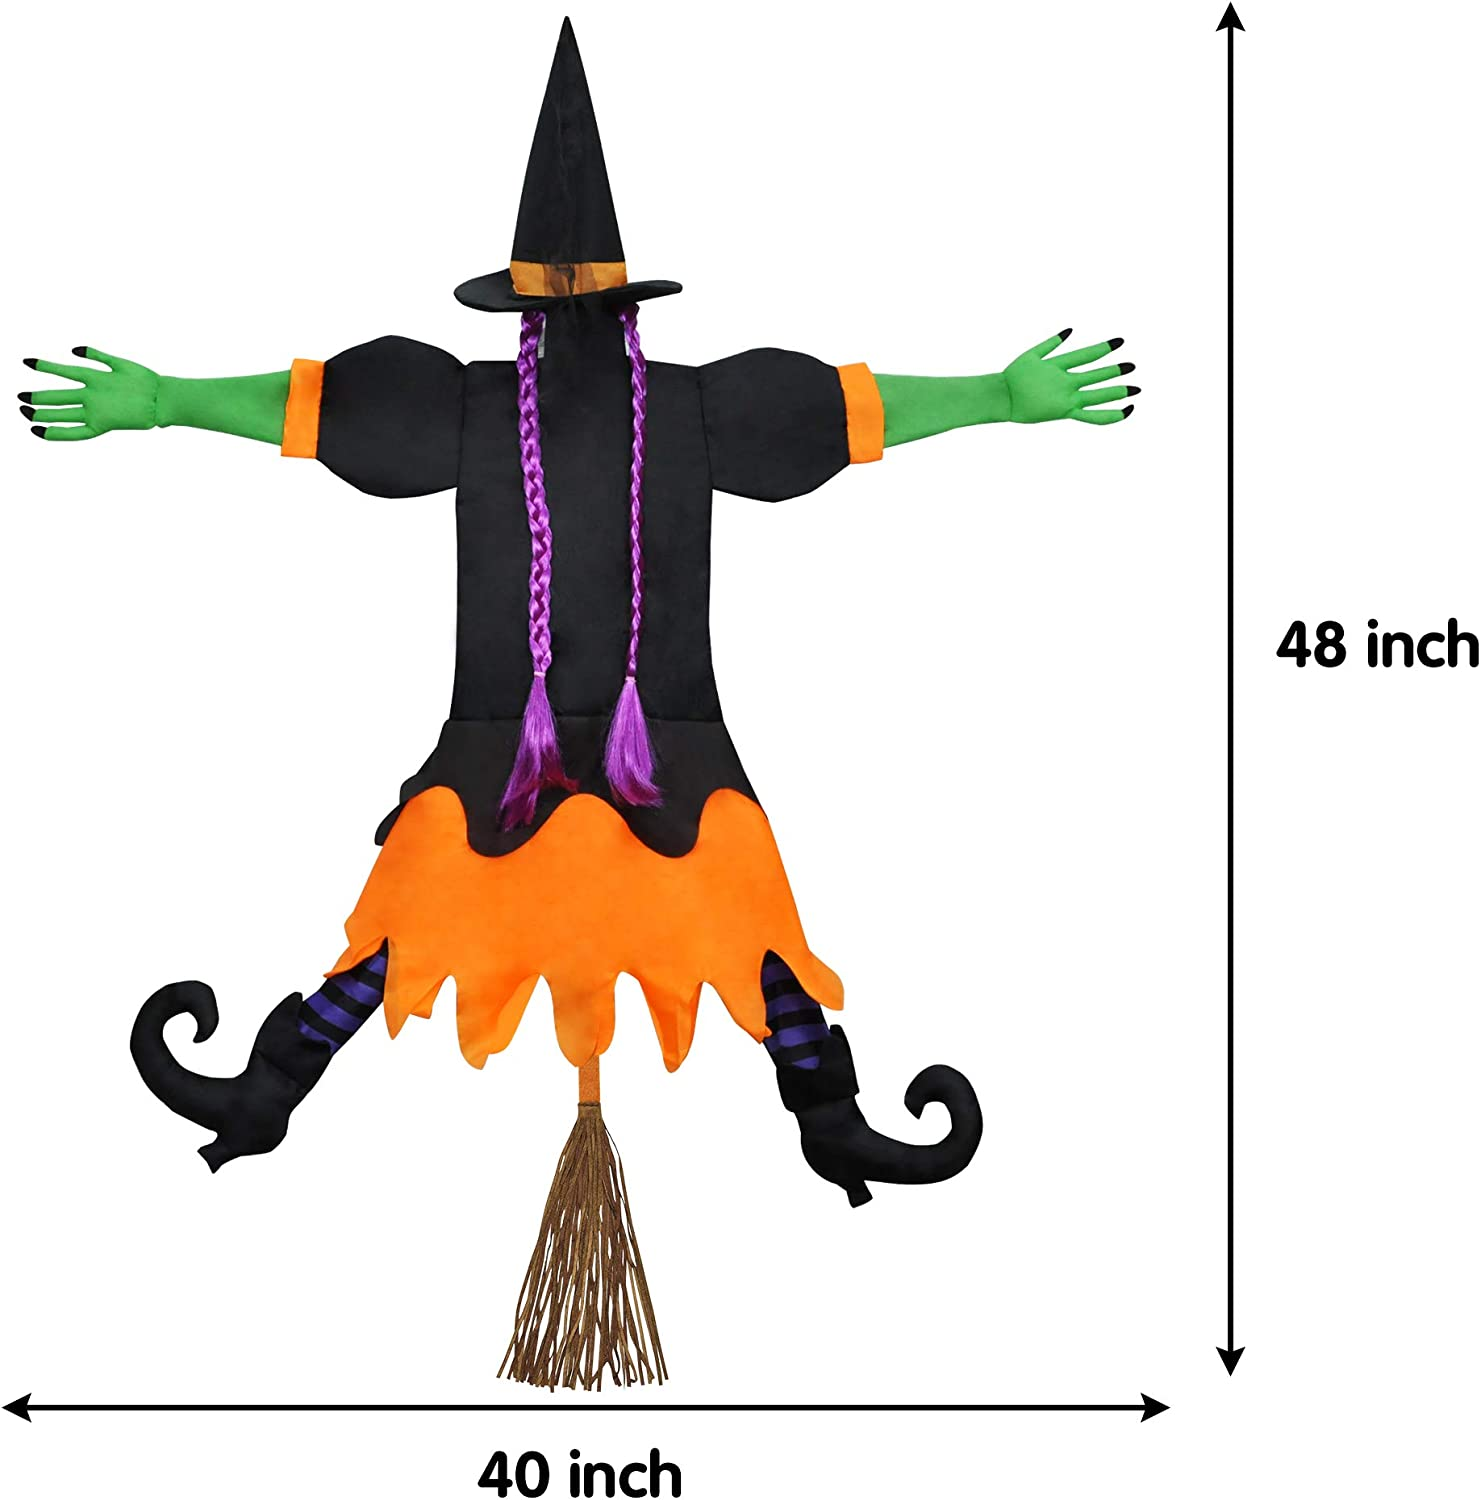 Crashing Witch Into Tree Halloween Decoration 2 Packs Halloween Outdoor Tree Trunks or Pillars Decor